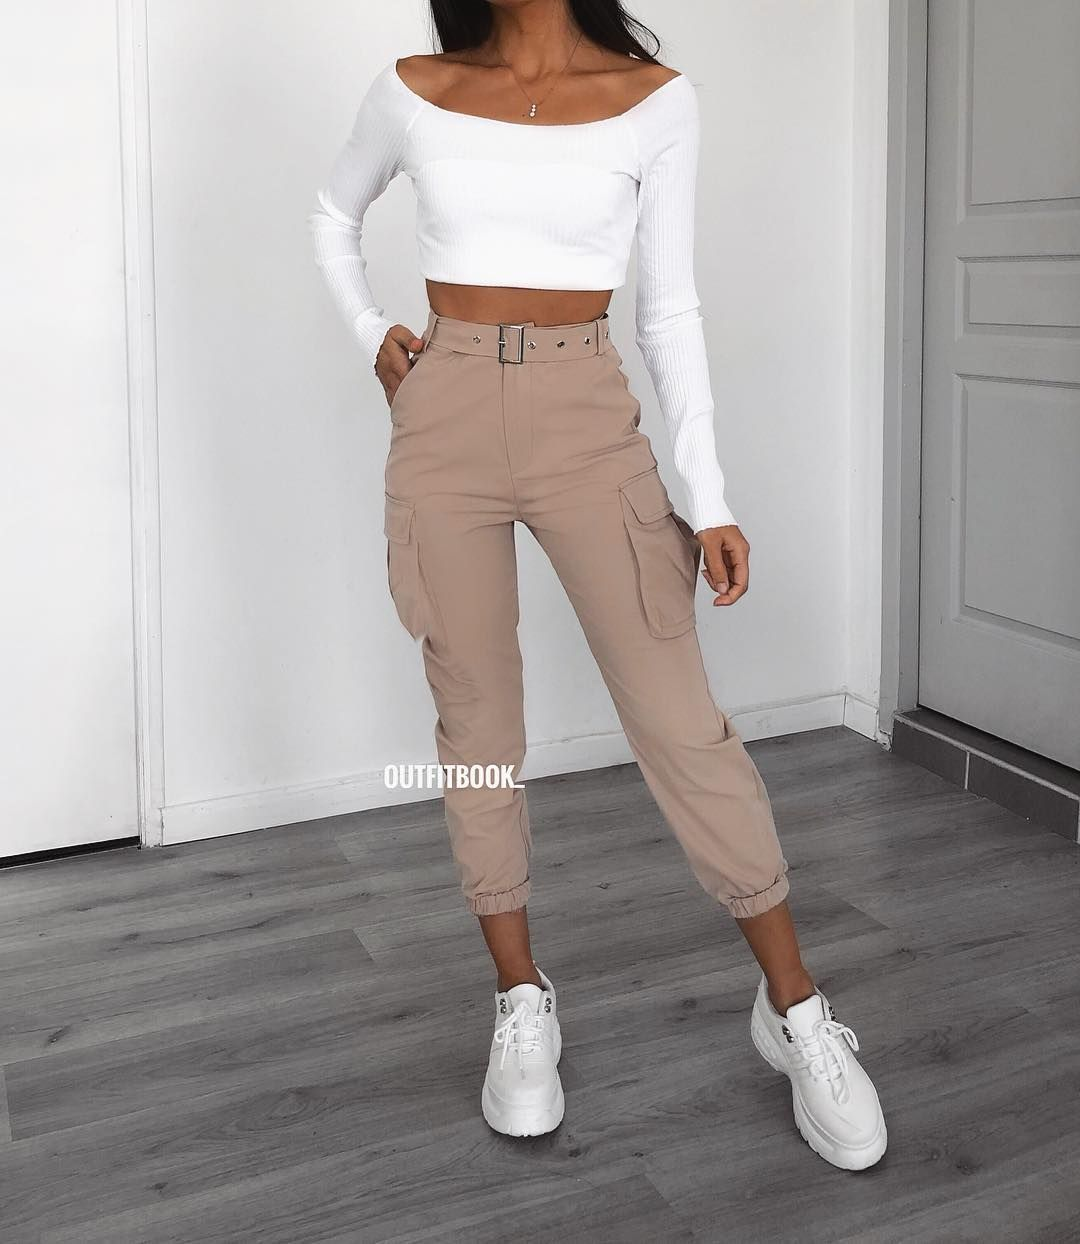 """www.outfitbook.fr on Instagram: """"The Beige Cargo Pants are back in stock ��� Love this combo! � Pants: 1077 